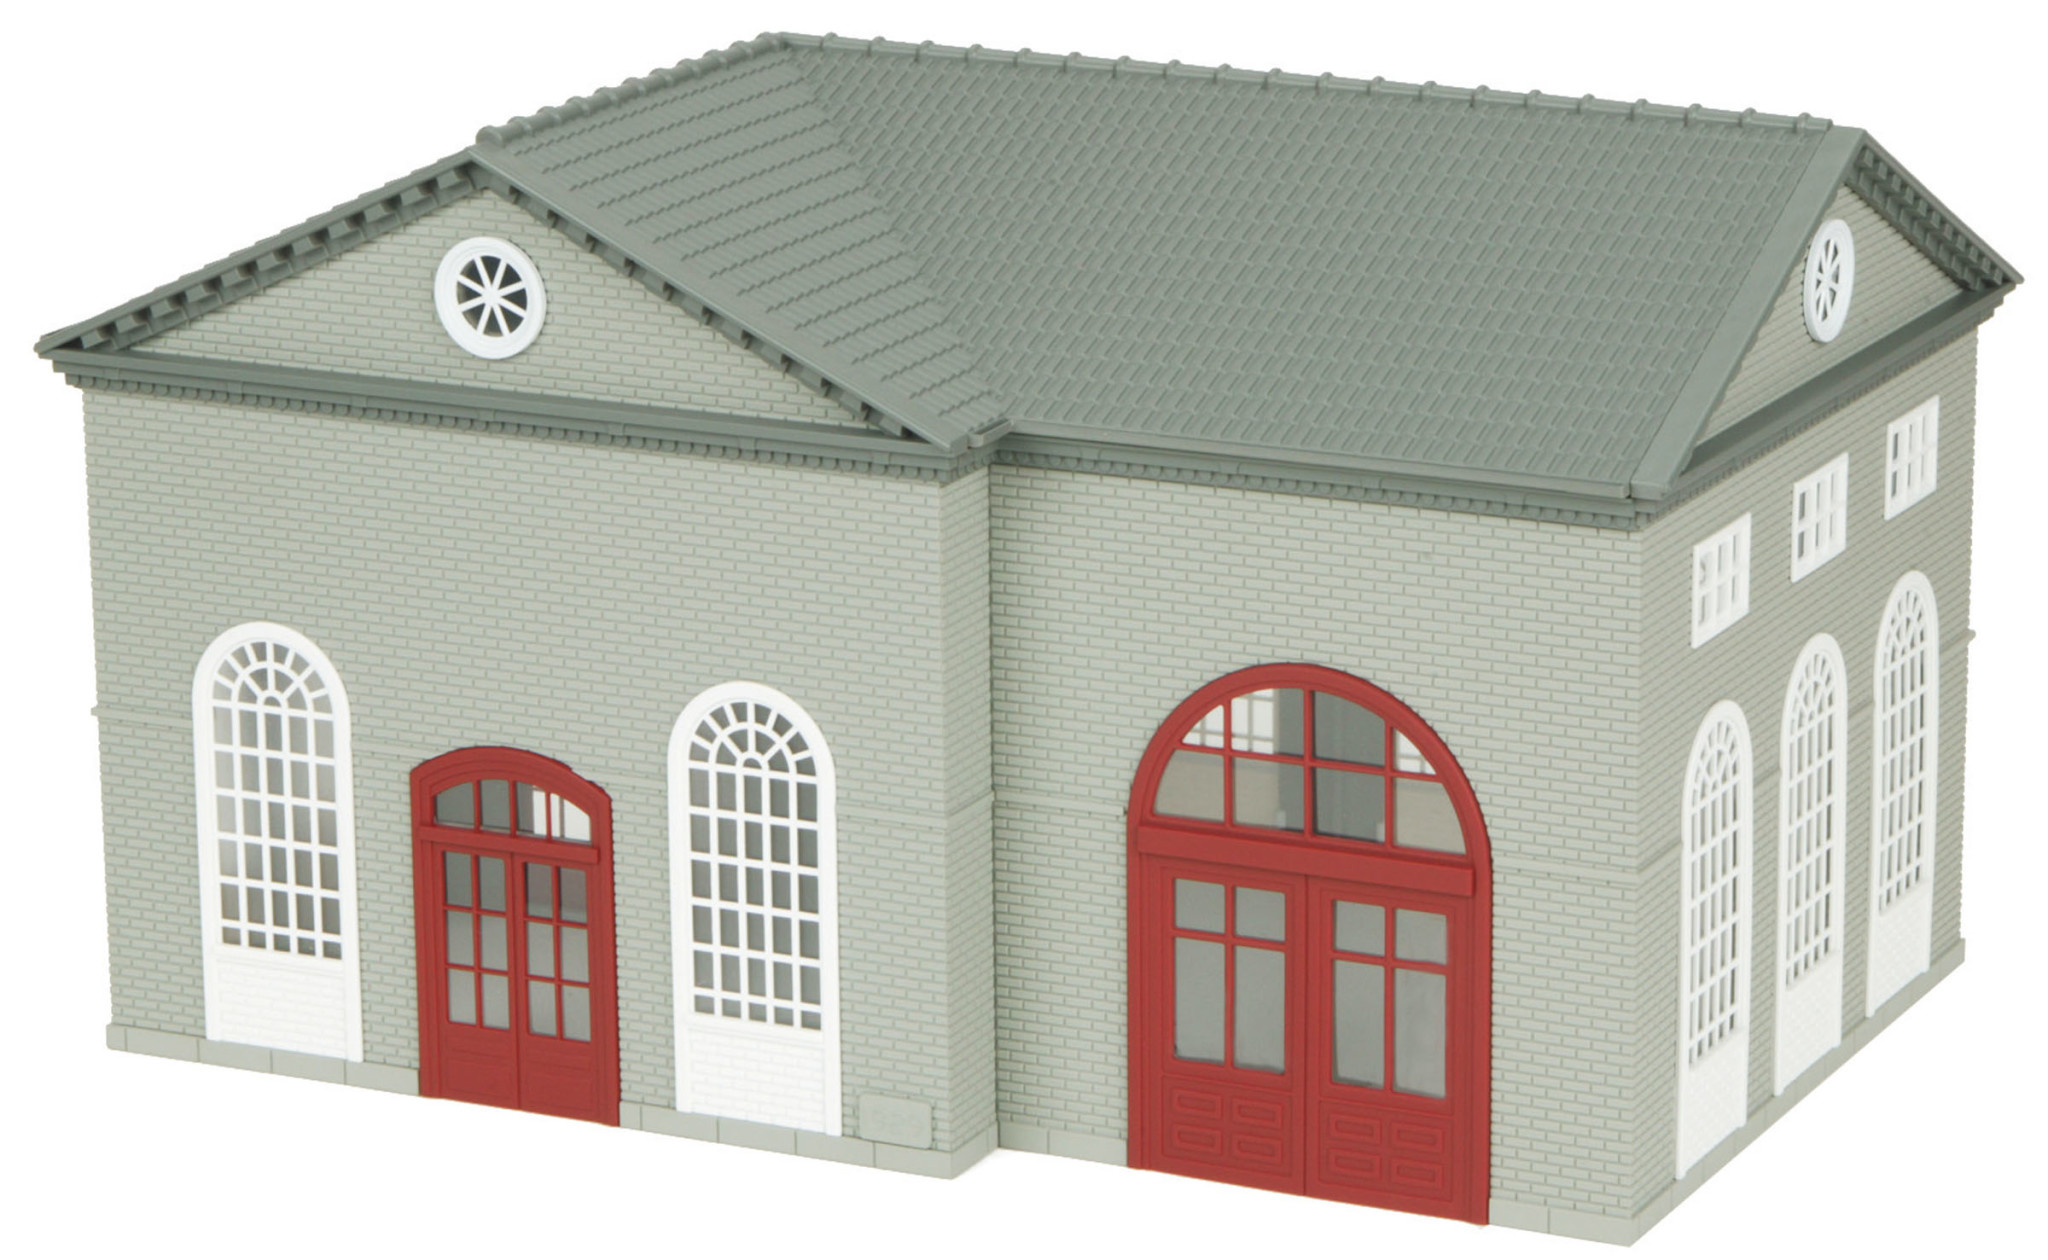 3090007 - Water Supply Building